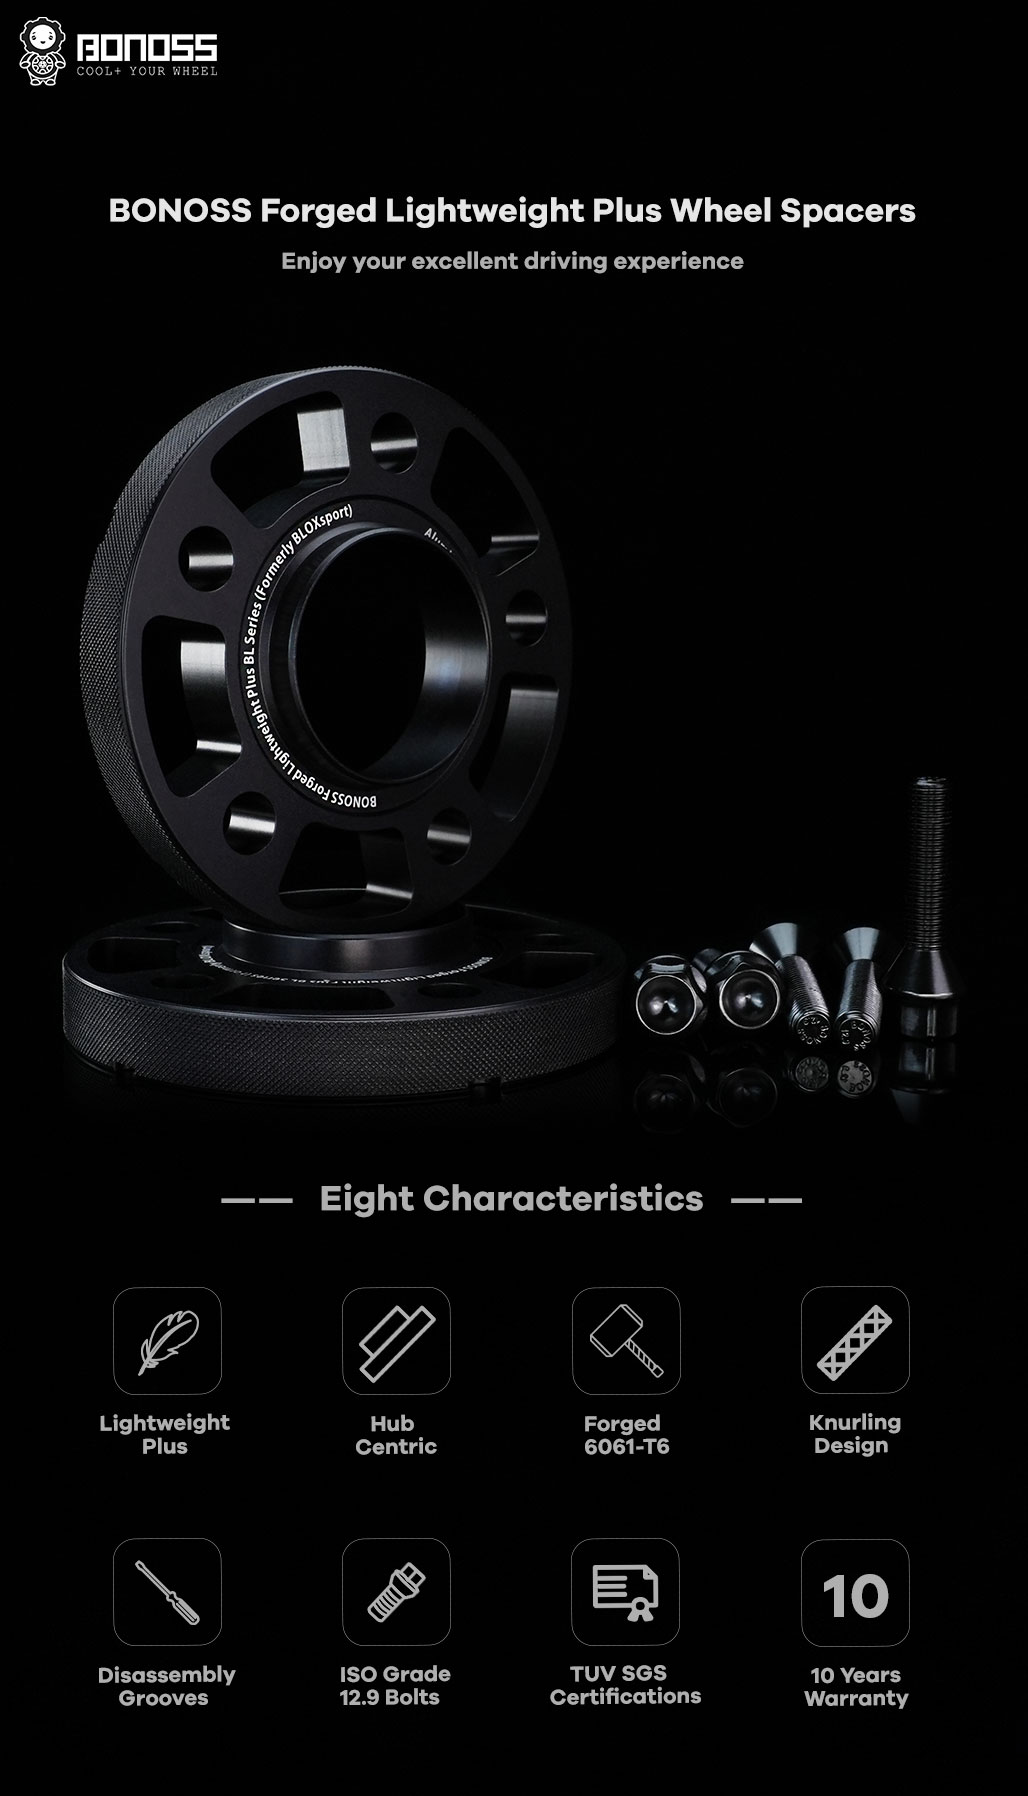 BONOSS Forged Lightweight Plus Hubcentric Wheel Spacers 5 Lug Wheel Adapters Car Wheel ET Spacers AL6061-T6 F